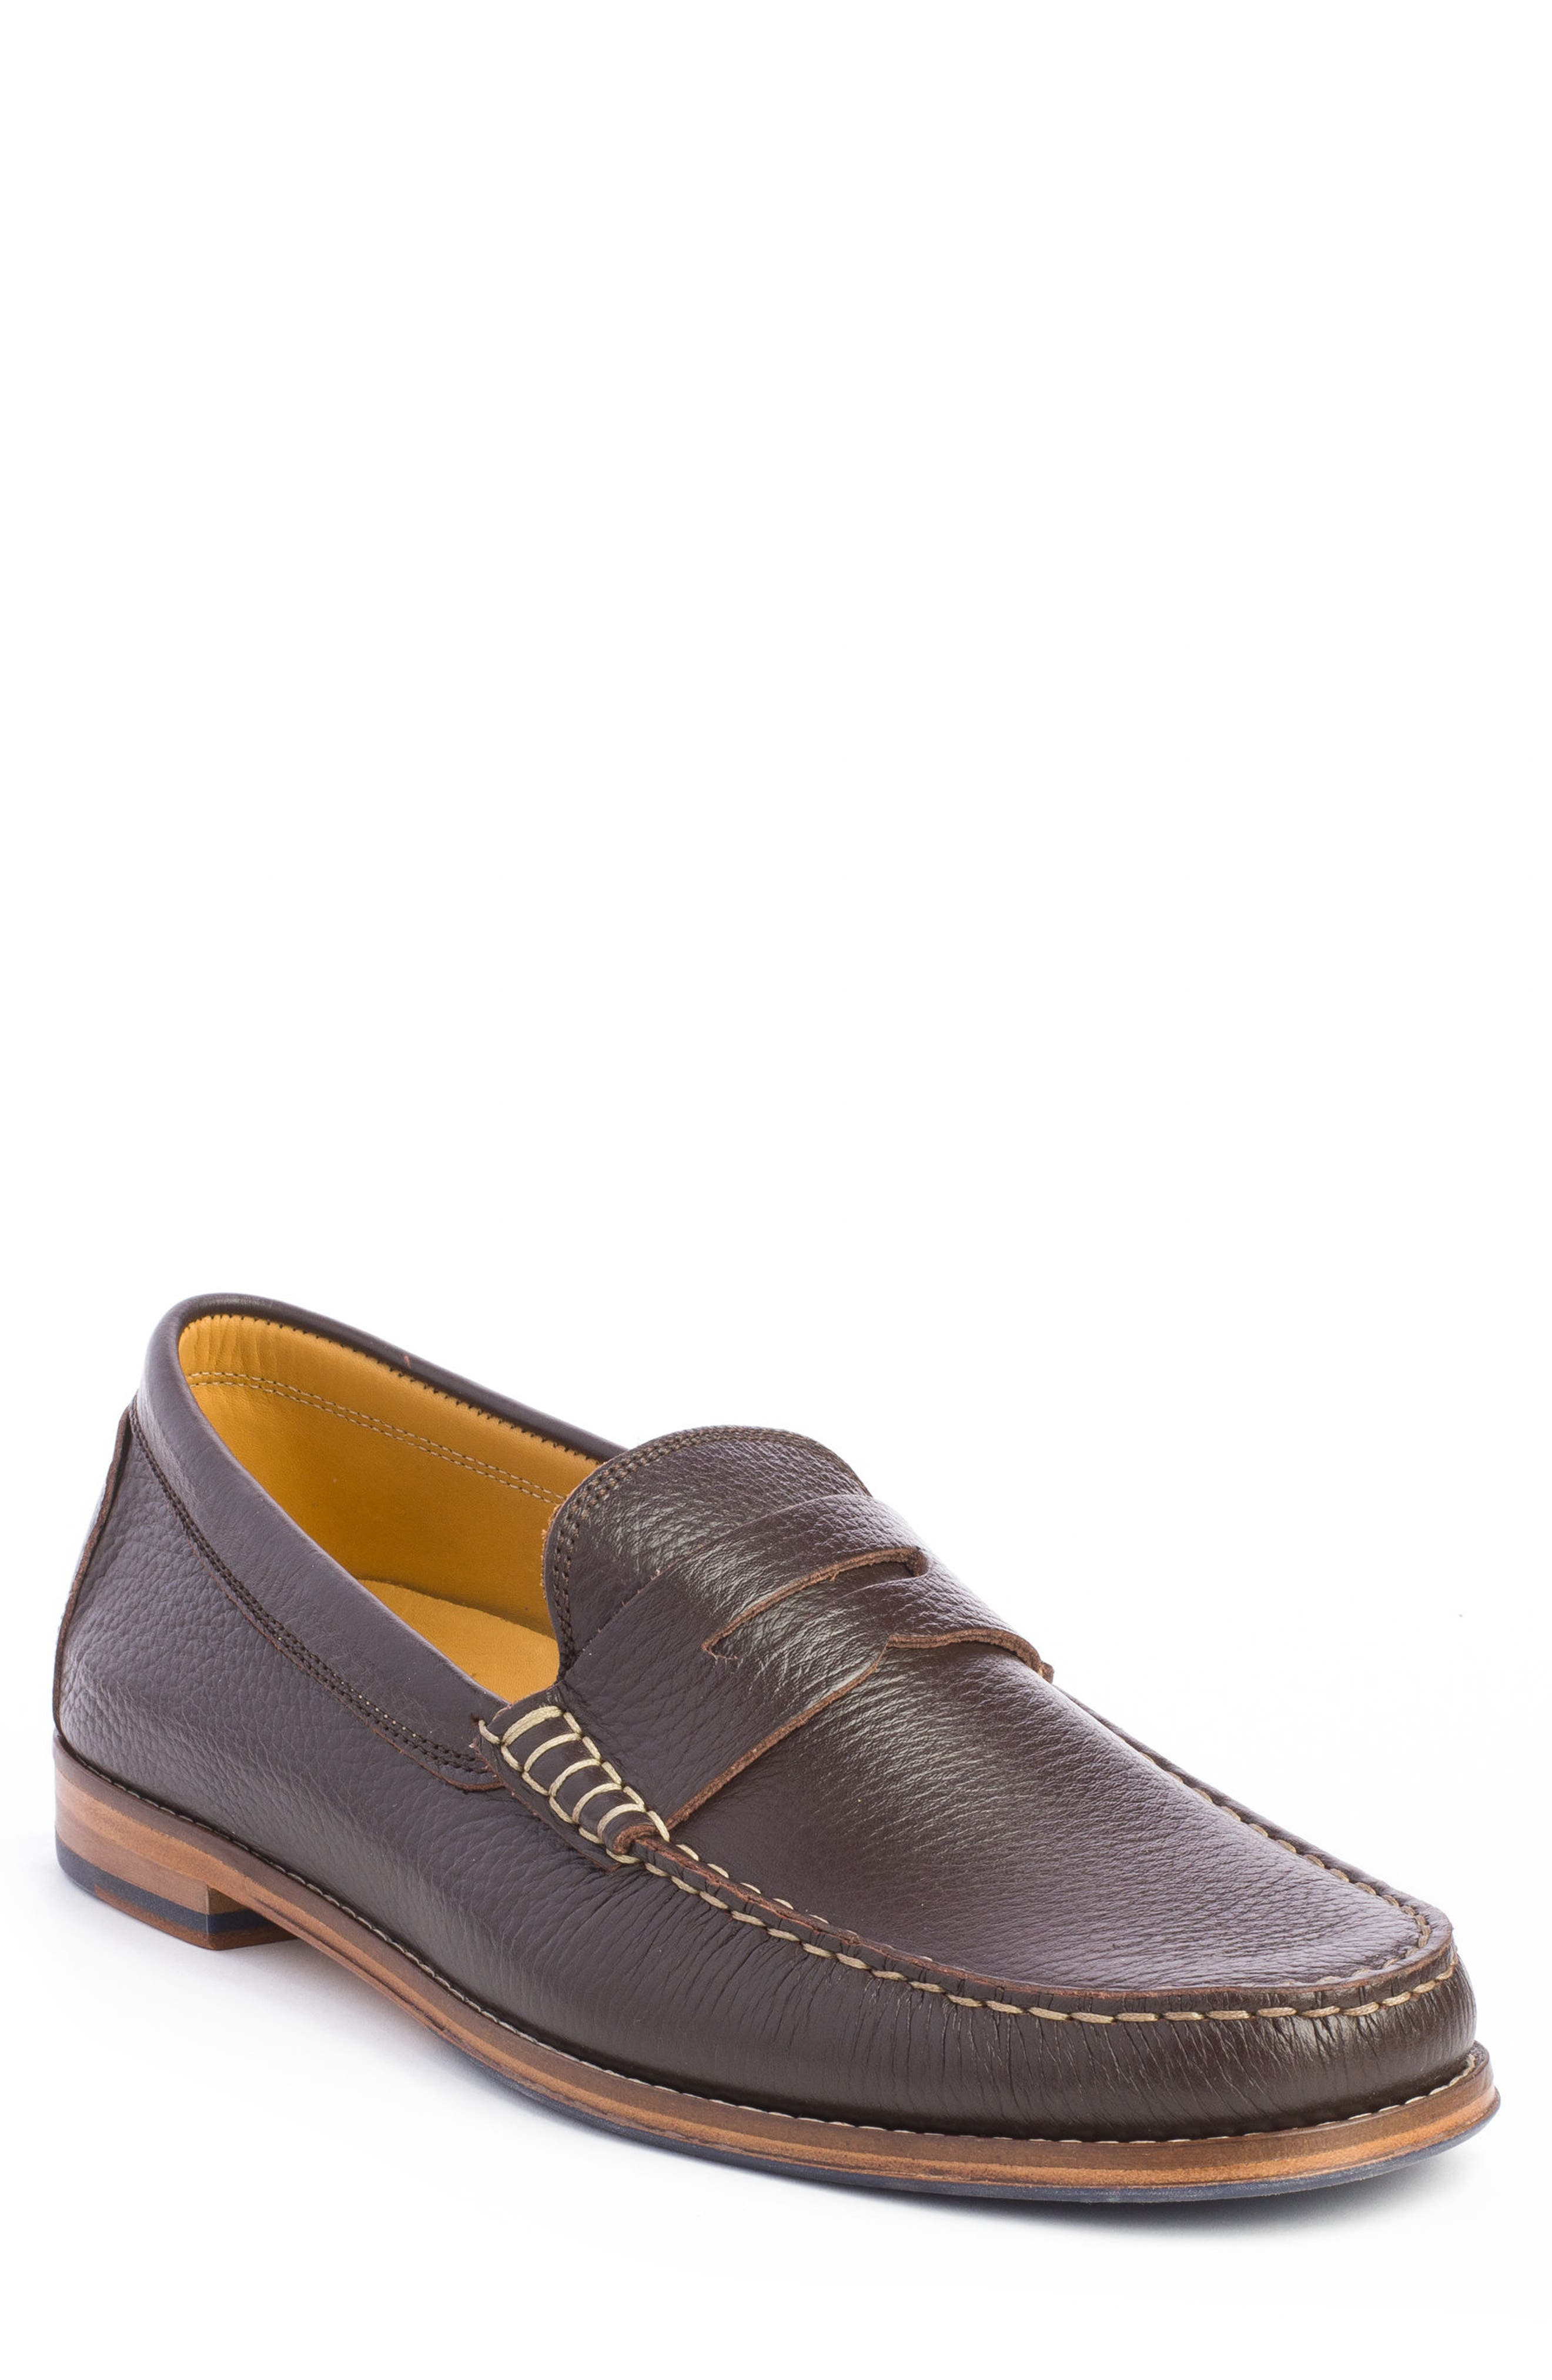 Ripleys Penny Loafer,                             Main thumbnail 1, color,                             BROWN